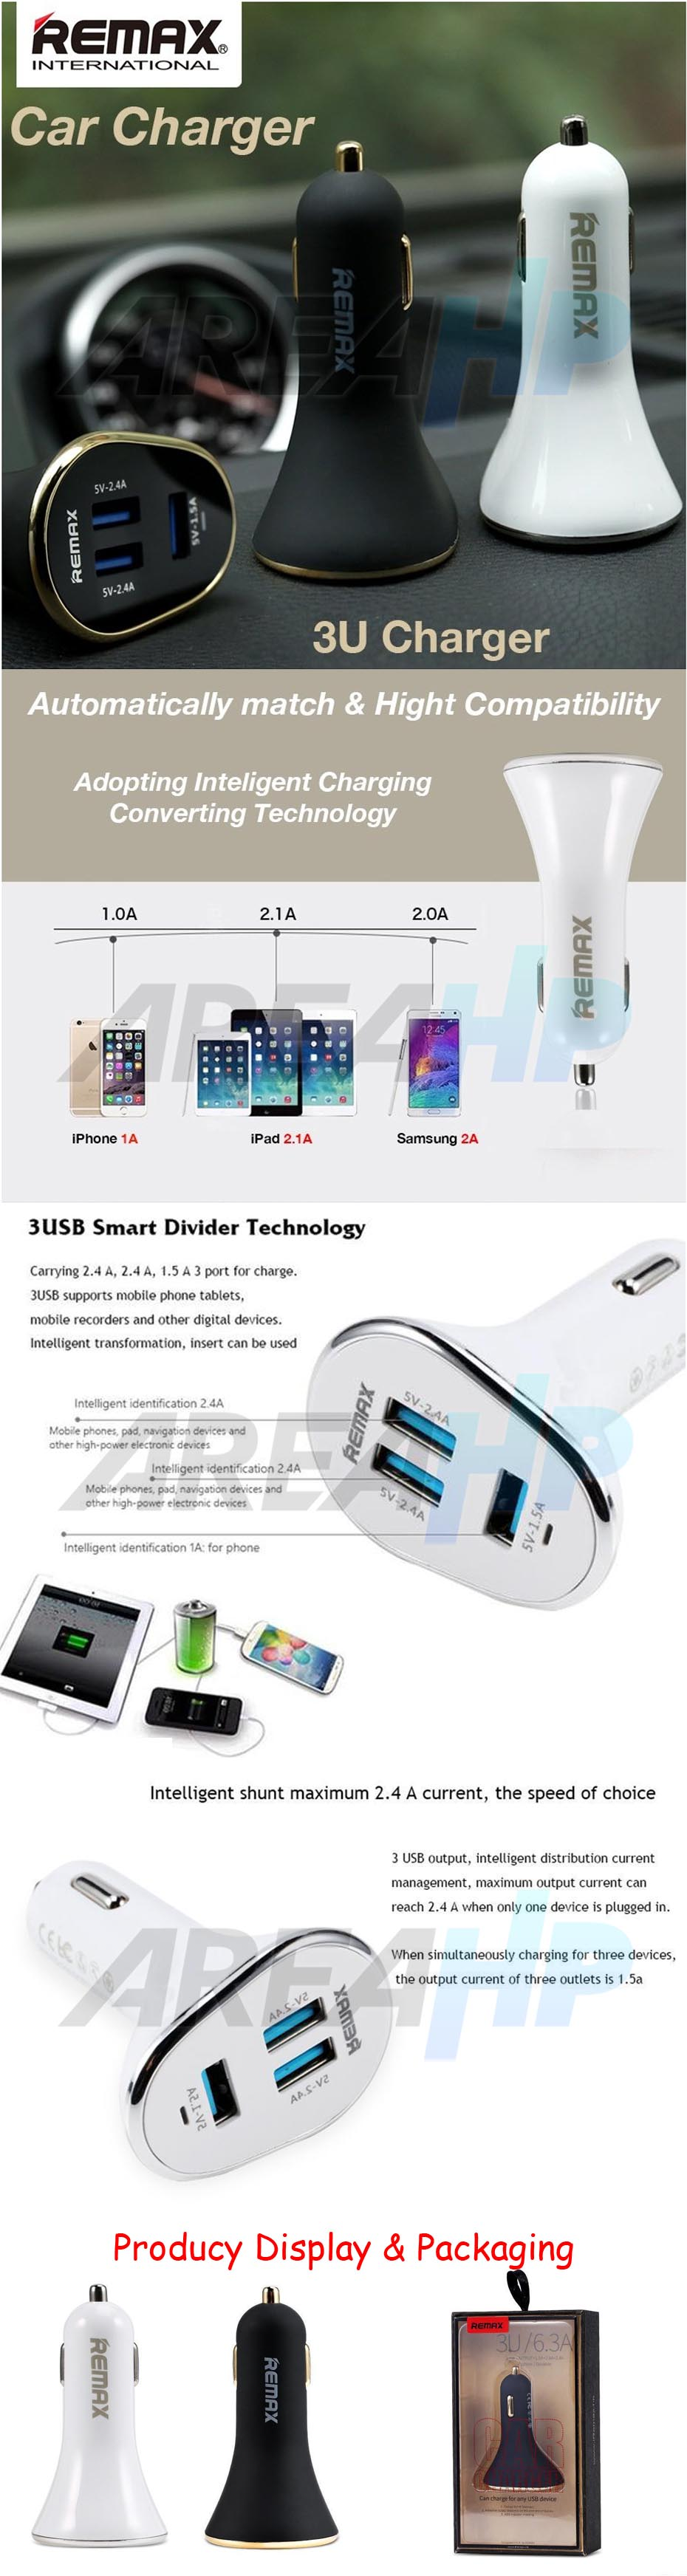 Remax Car Fast Charger 3 USB Port 6.3A RCC302 Overview